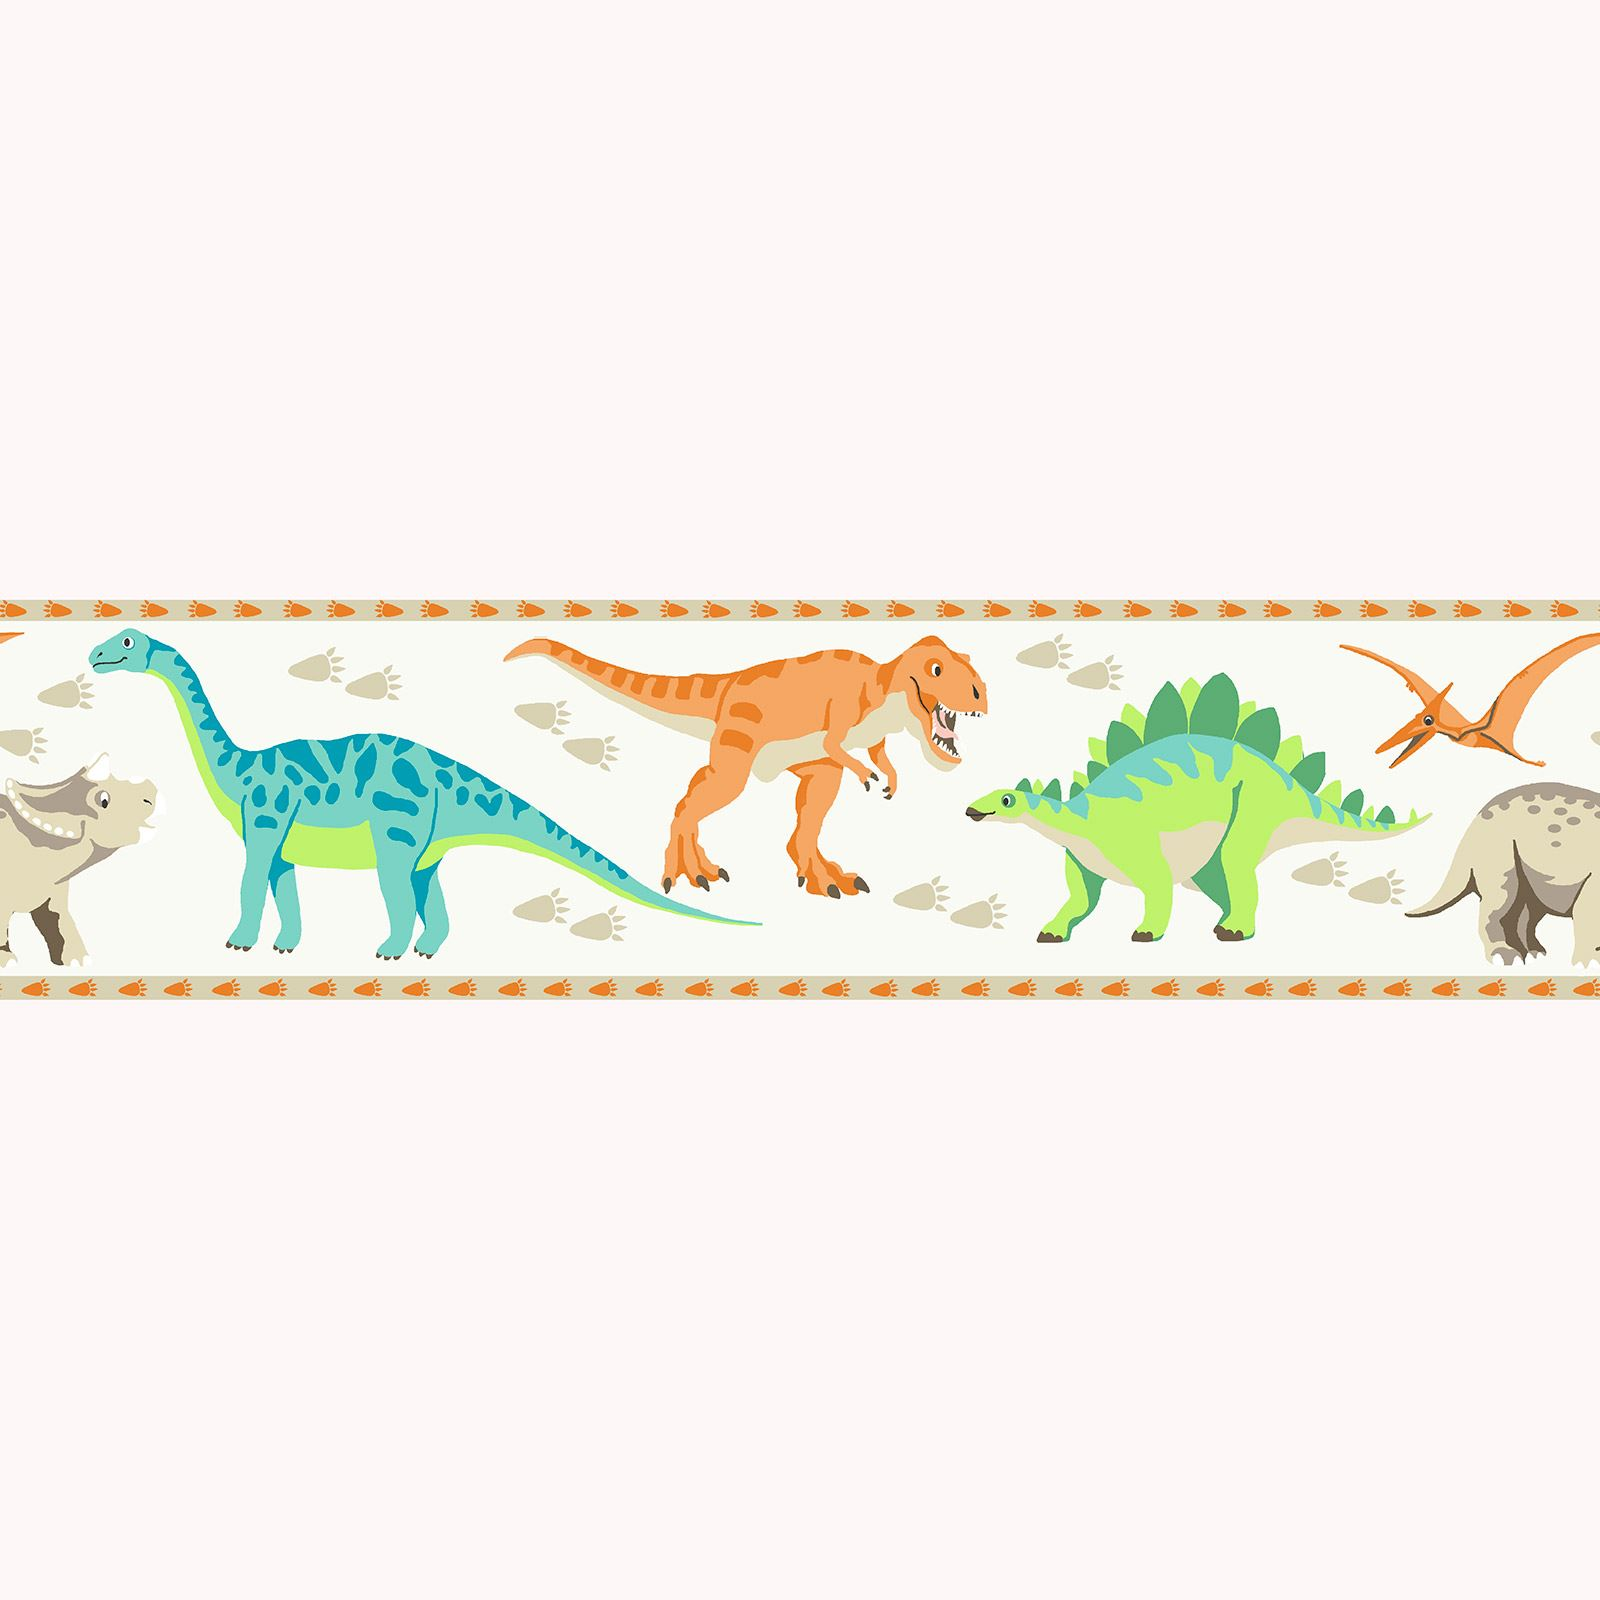 BOYS THEMED WALLPAPER BORDERS KIDS BEDROOM CARS, DINOSAUR, SPACE ... for Farm Animals Wallpaper Border  61obs